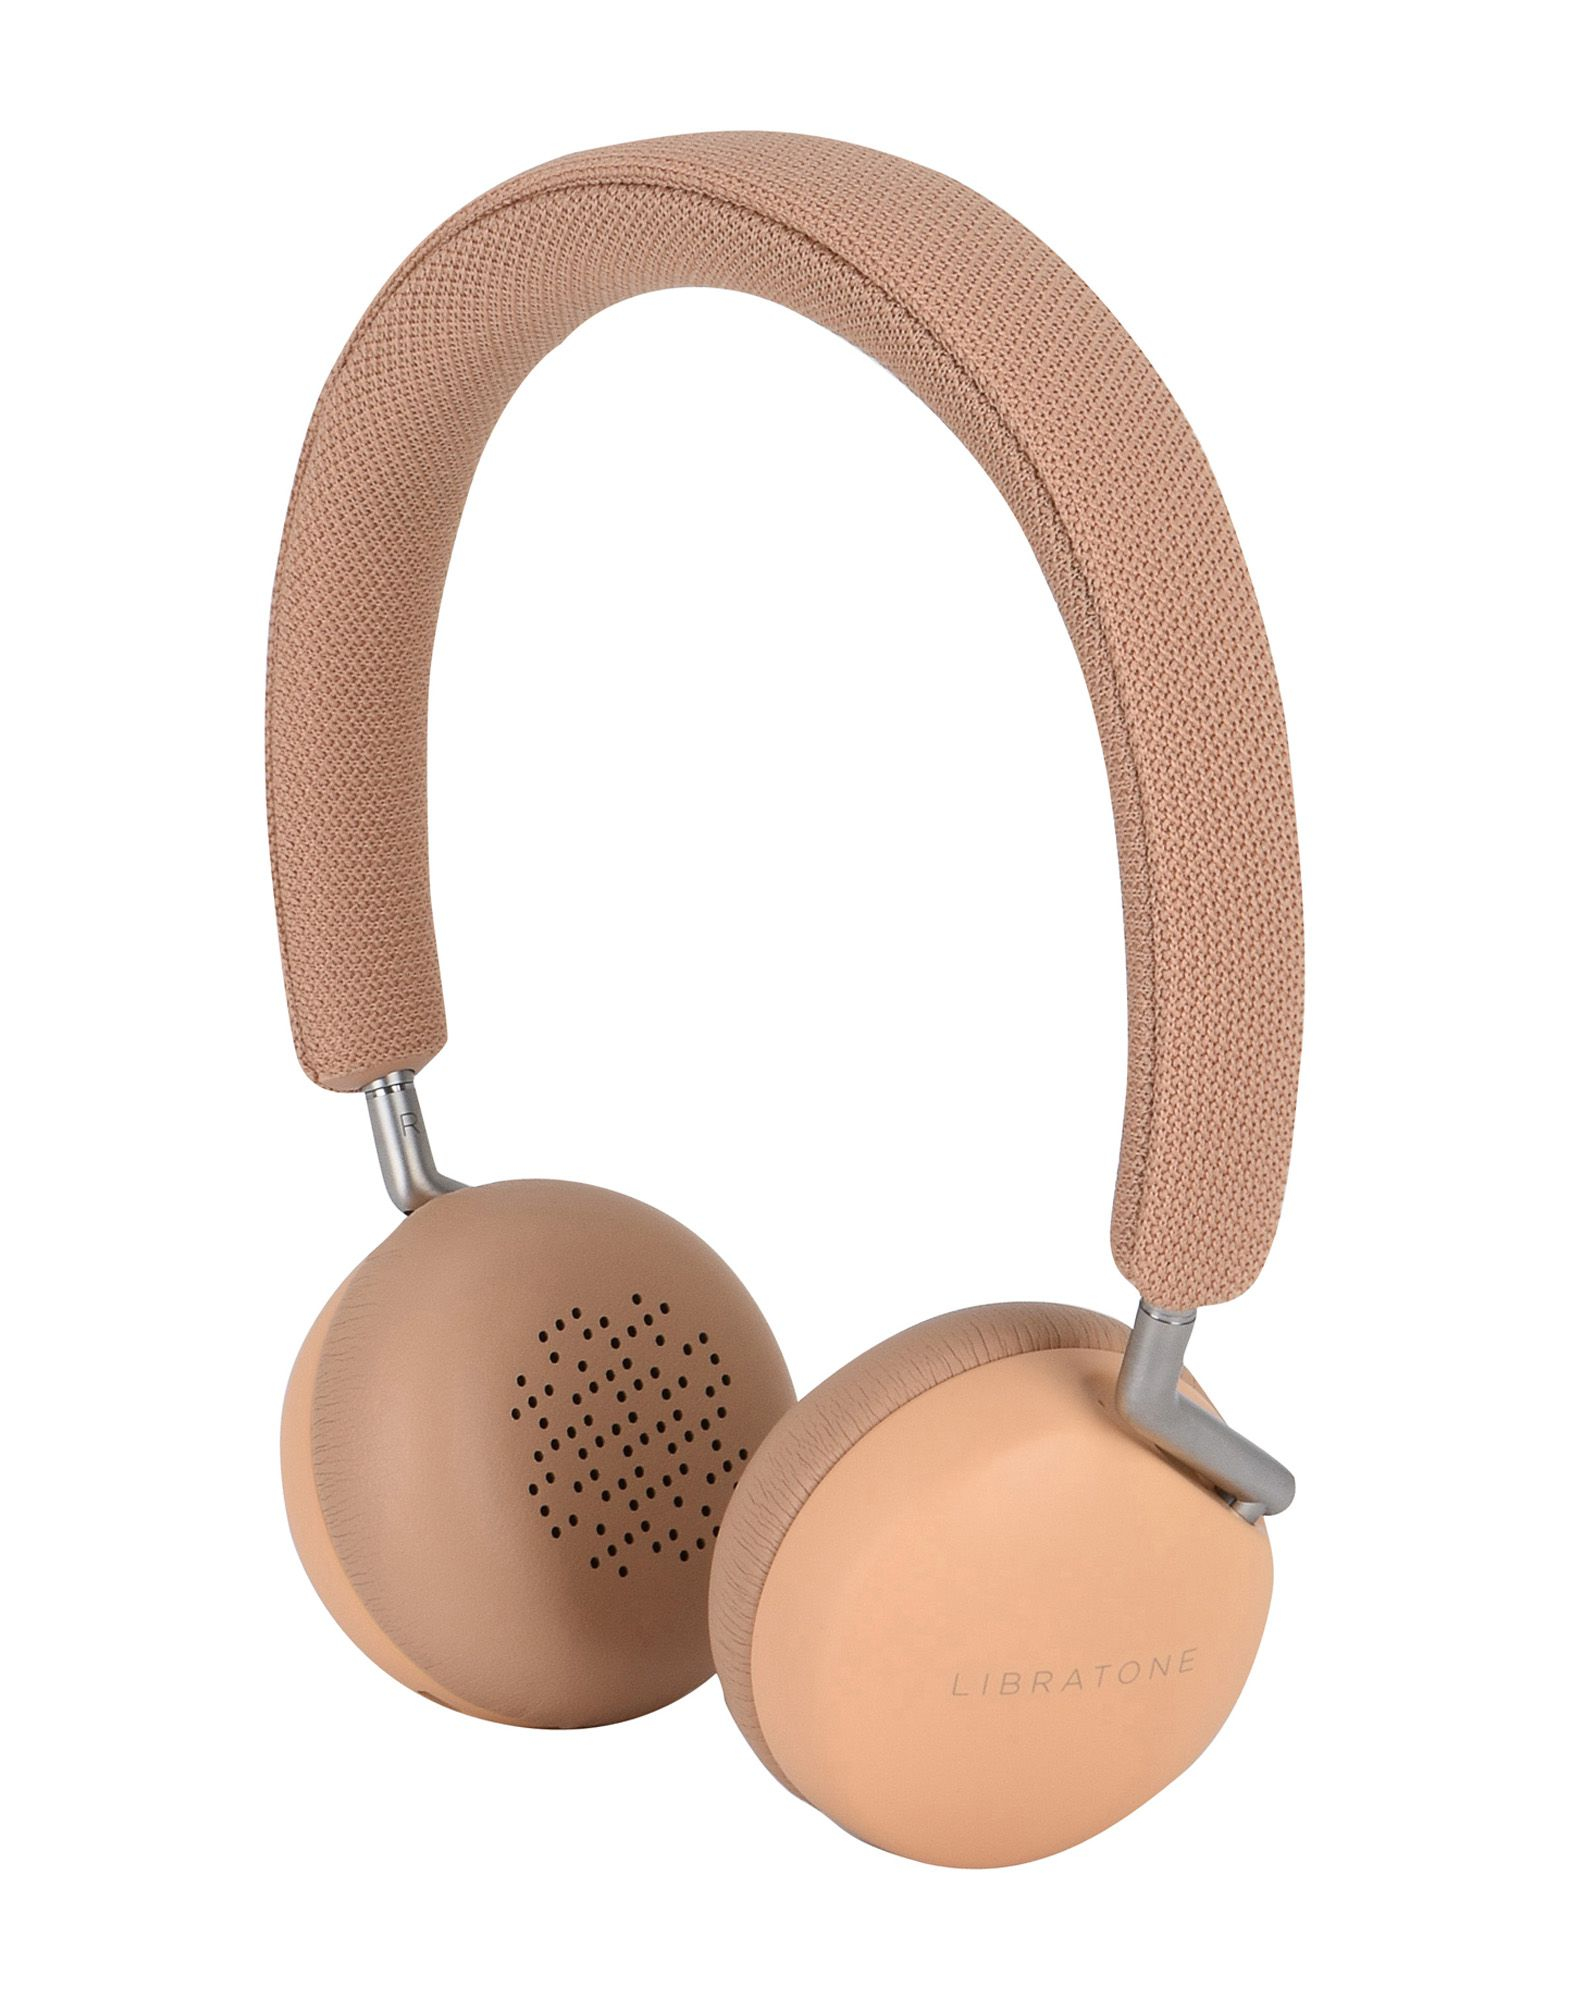 Cuffie Libratone Q Adapt Wireless Anc On-Ear Elegant Nude - Uomo - Acquista online su